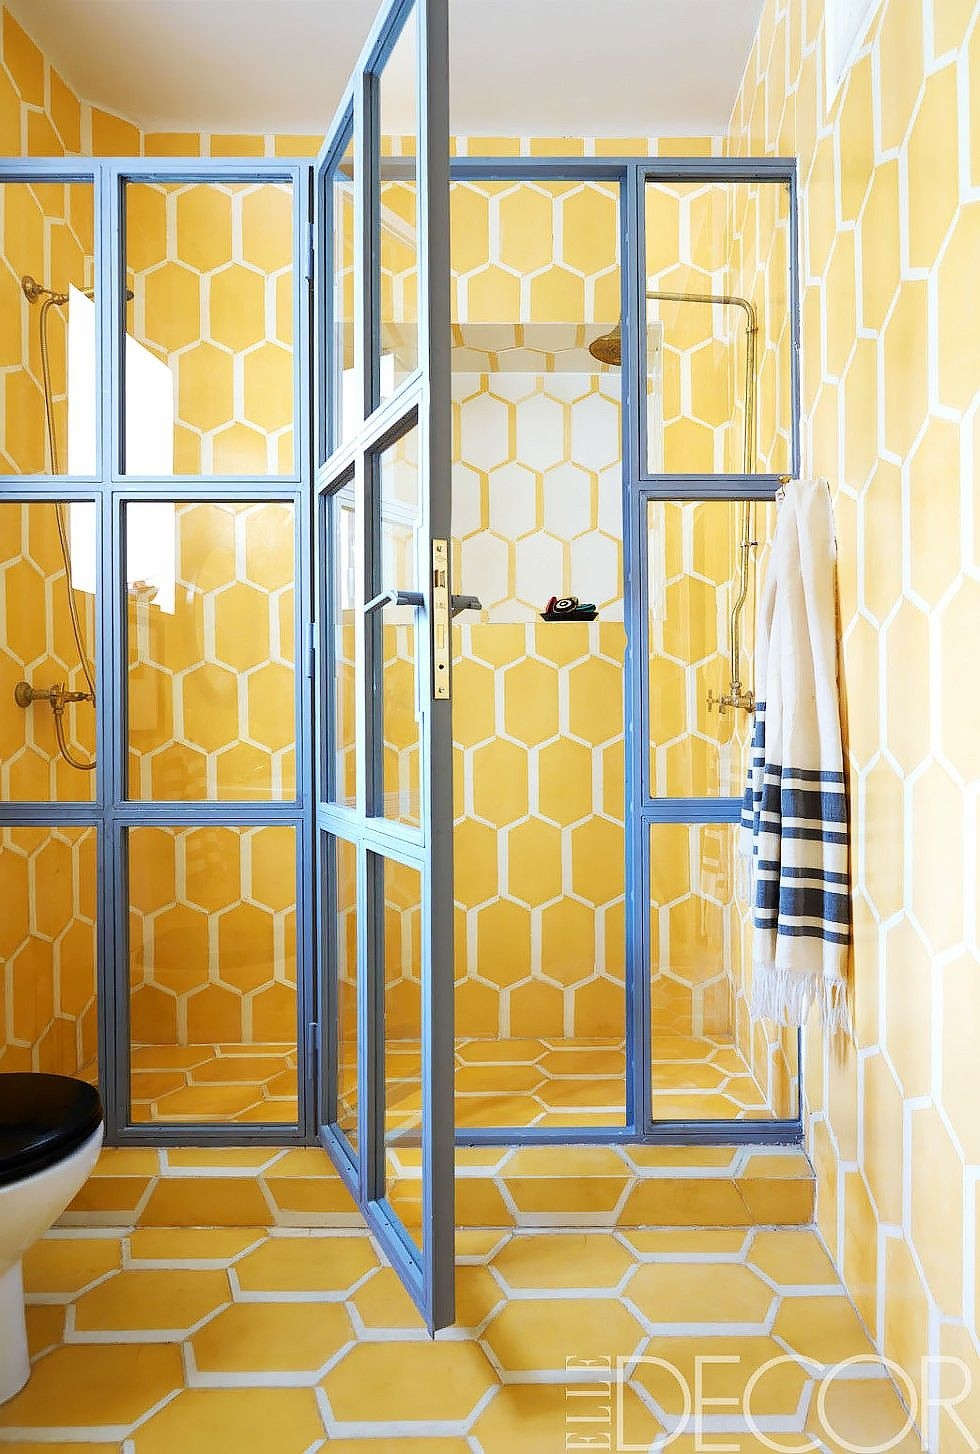 15 tiny bathrooms with major chic factor bathrooms noelle becker